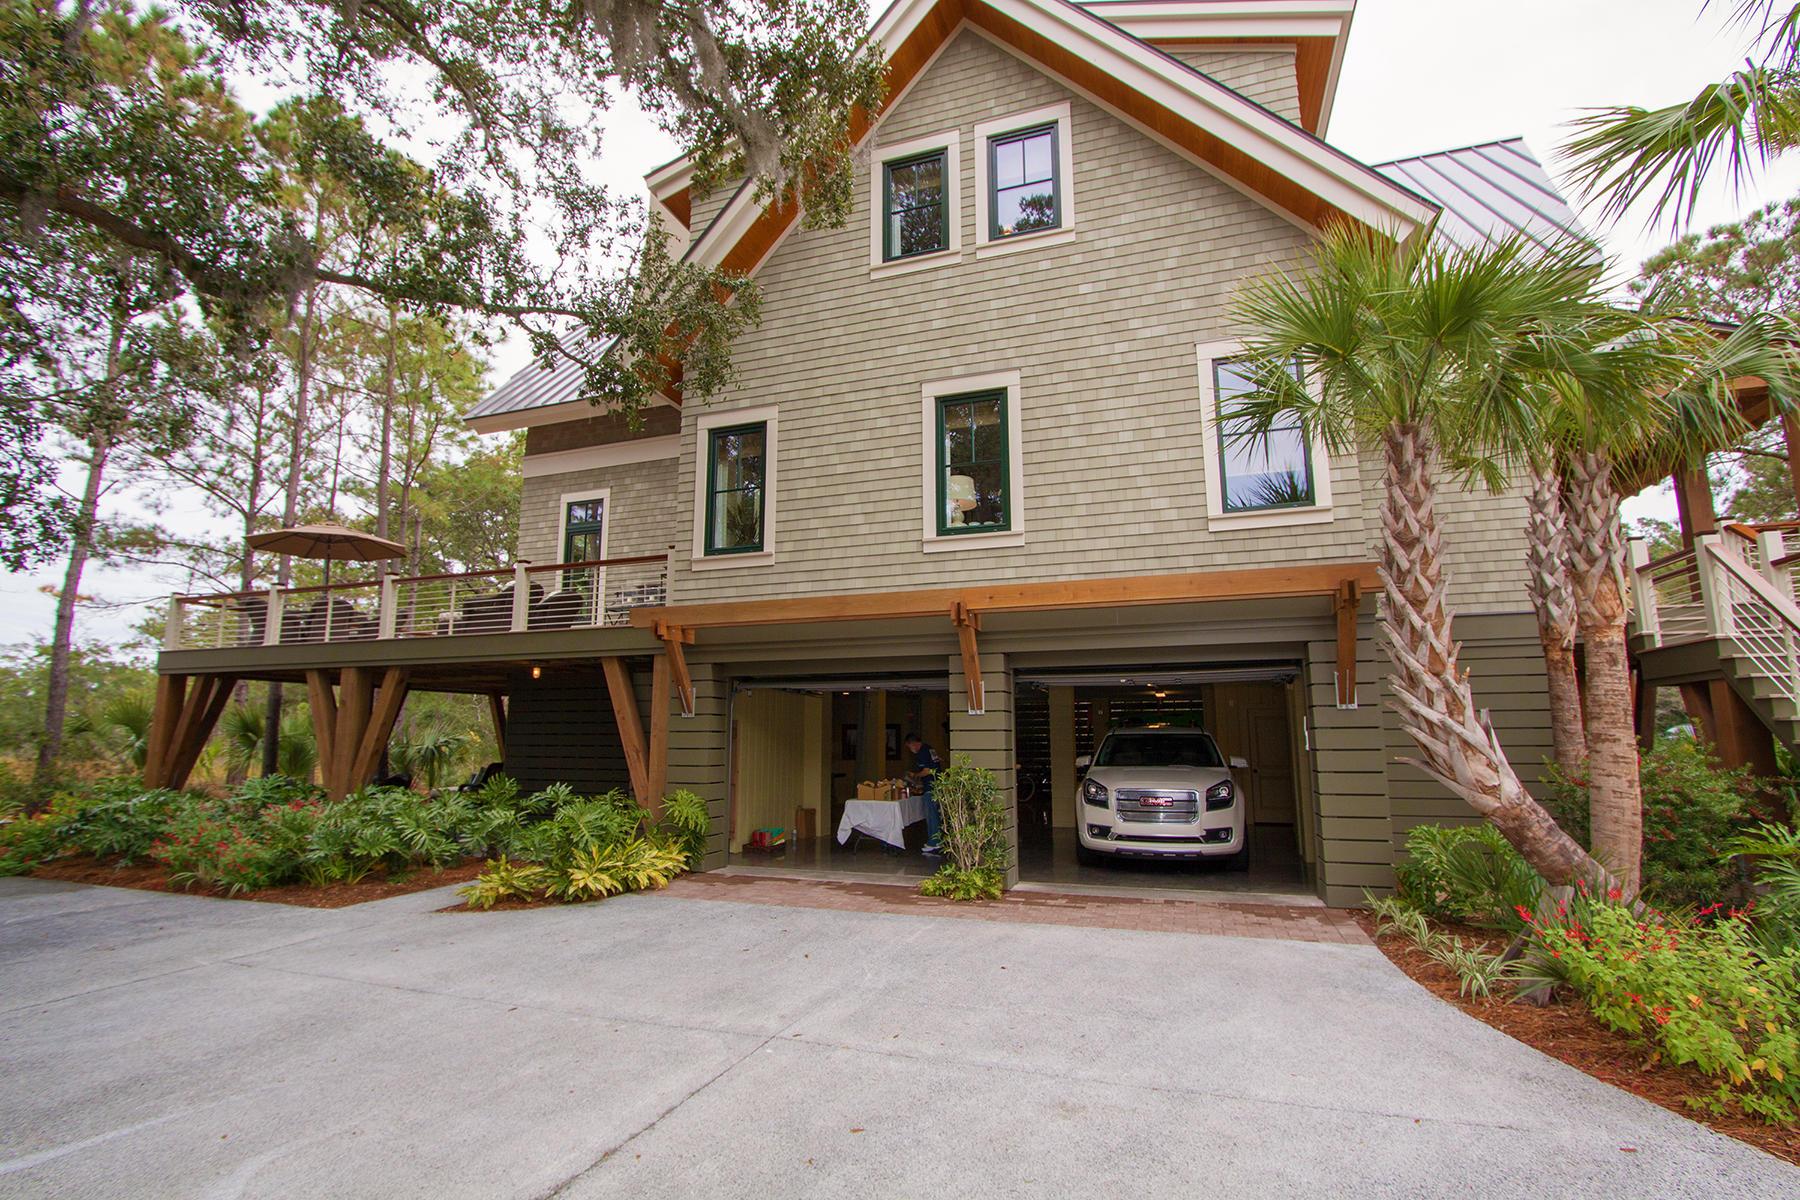 Photo of 119 Halona Ln, Johns Island, SC 29455